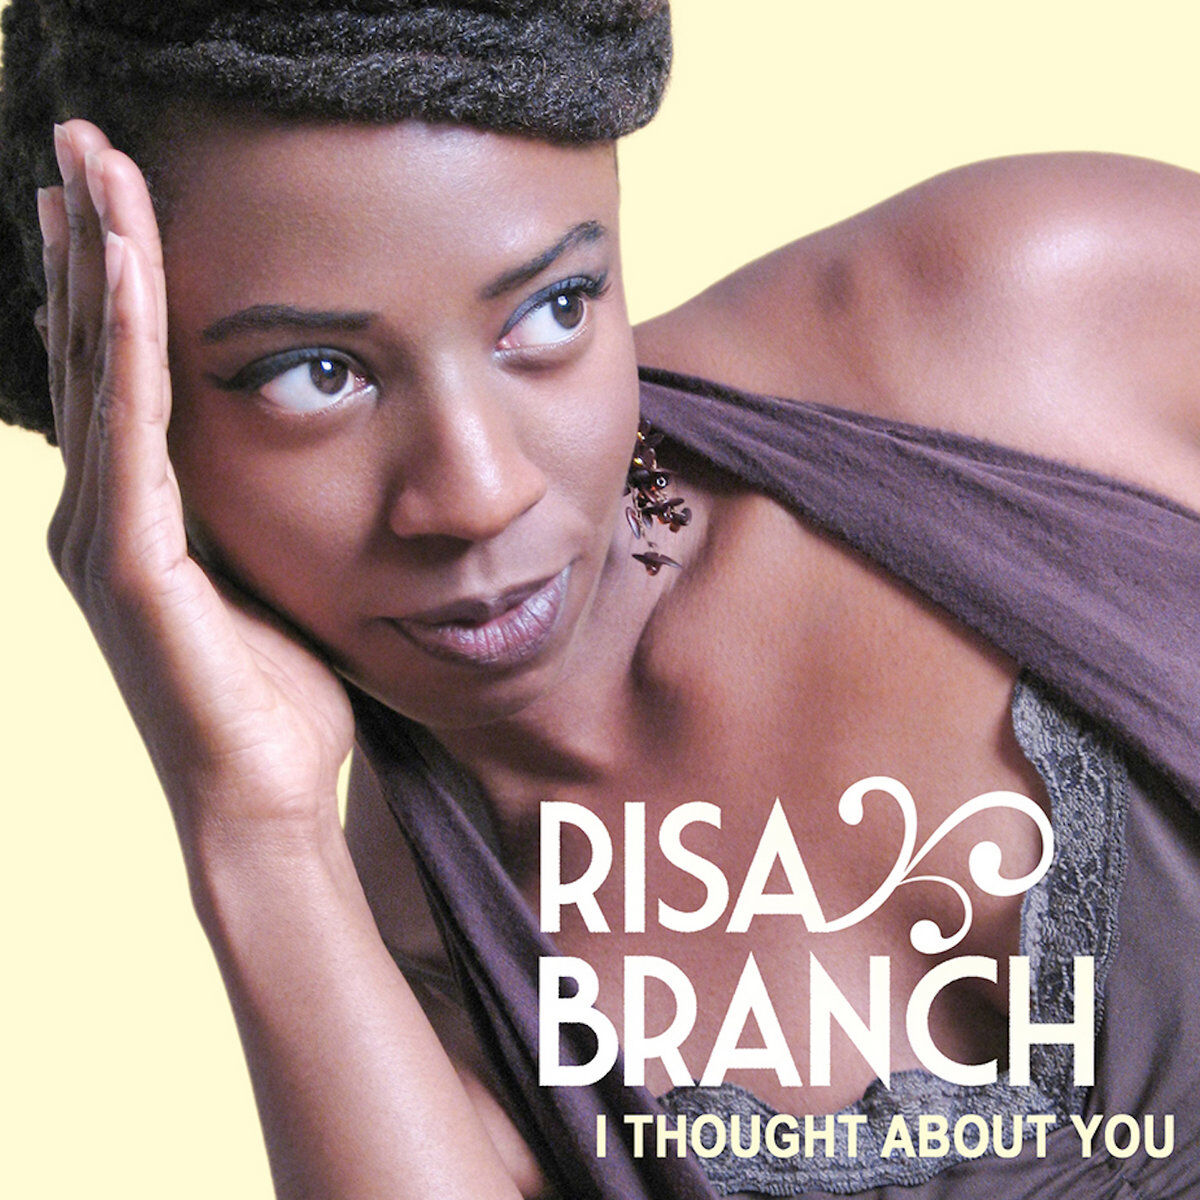 Risa Branch I thought about you